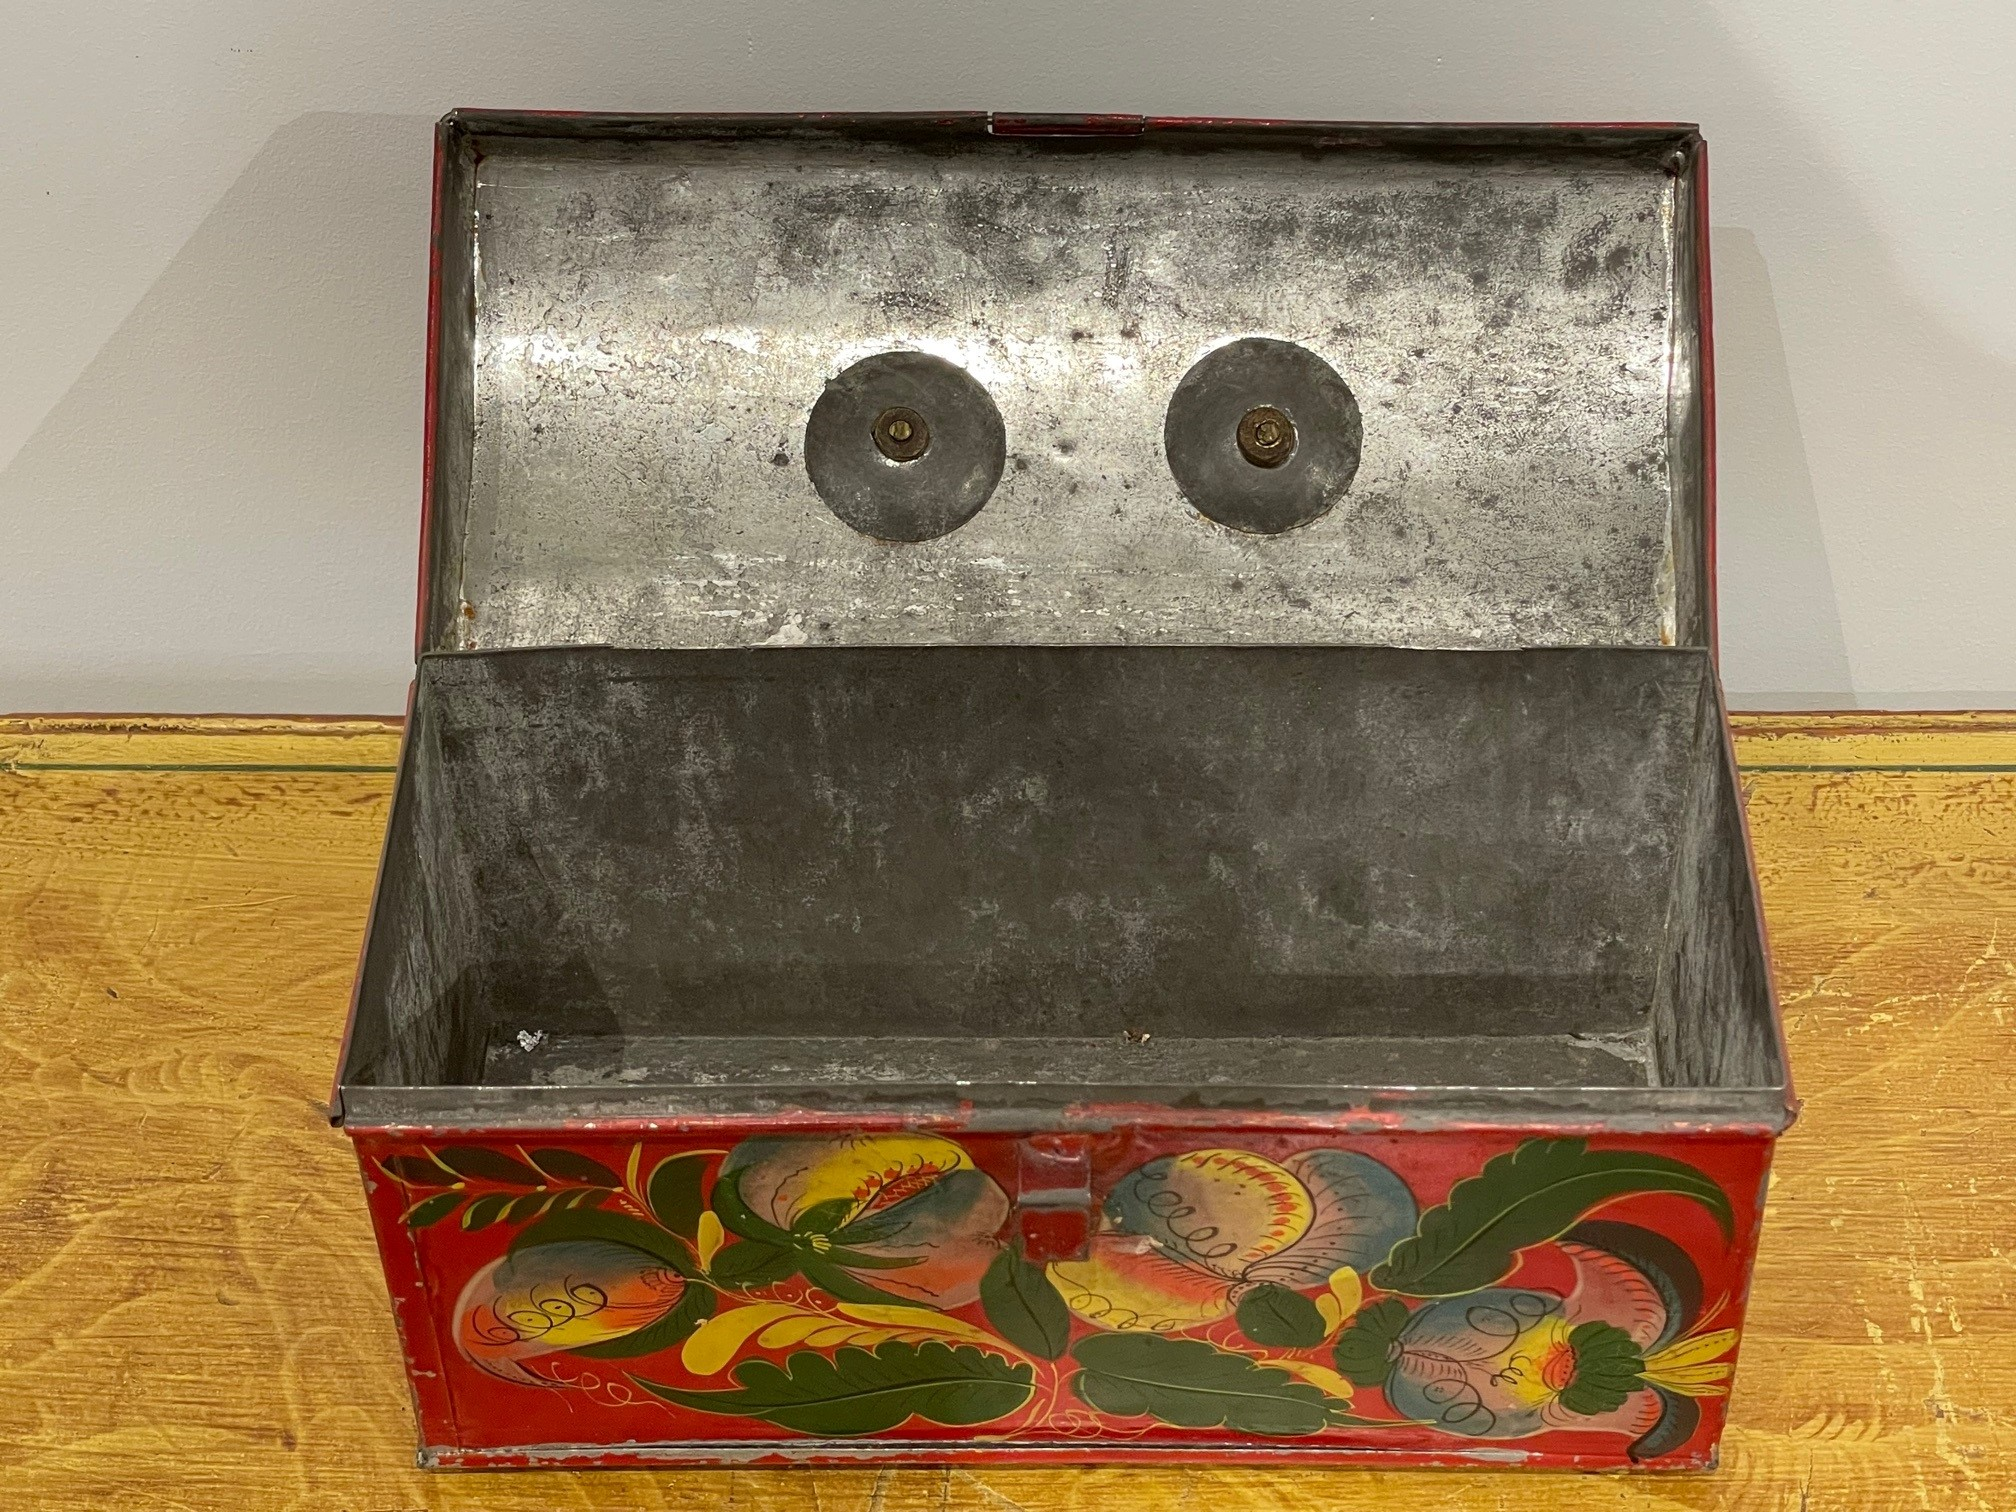 painted toleware document box rel=